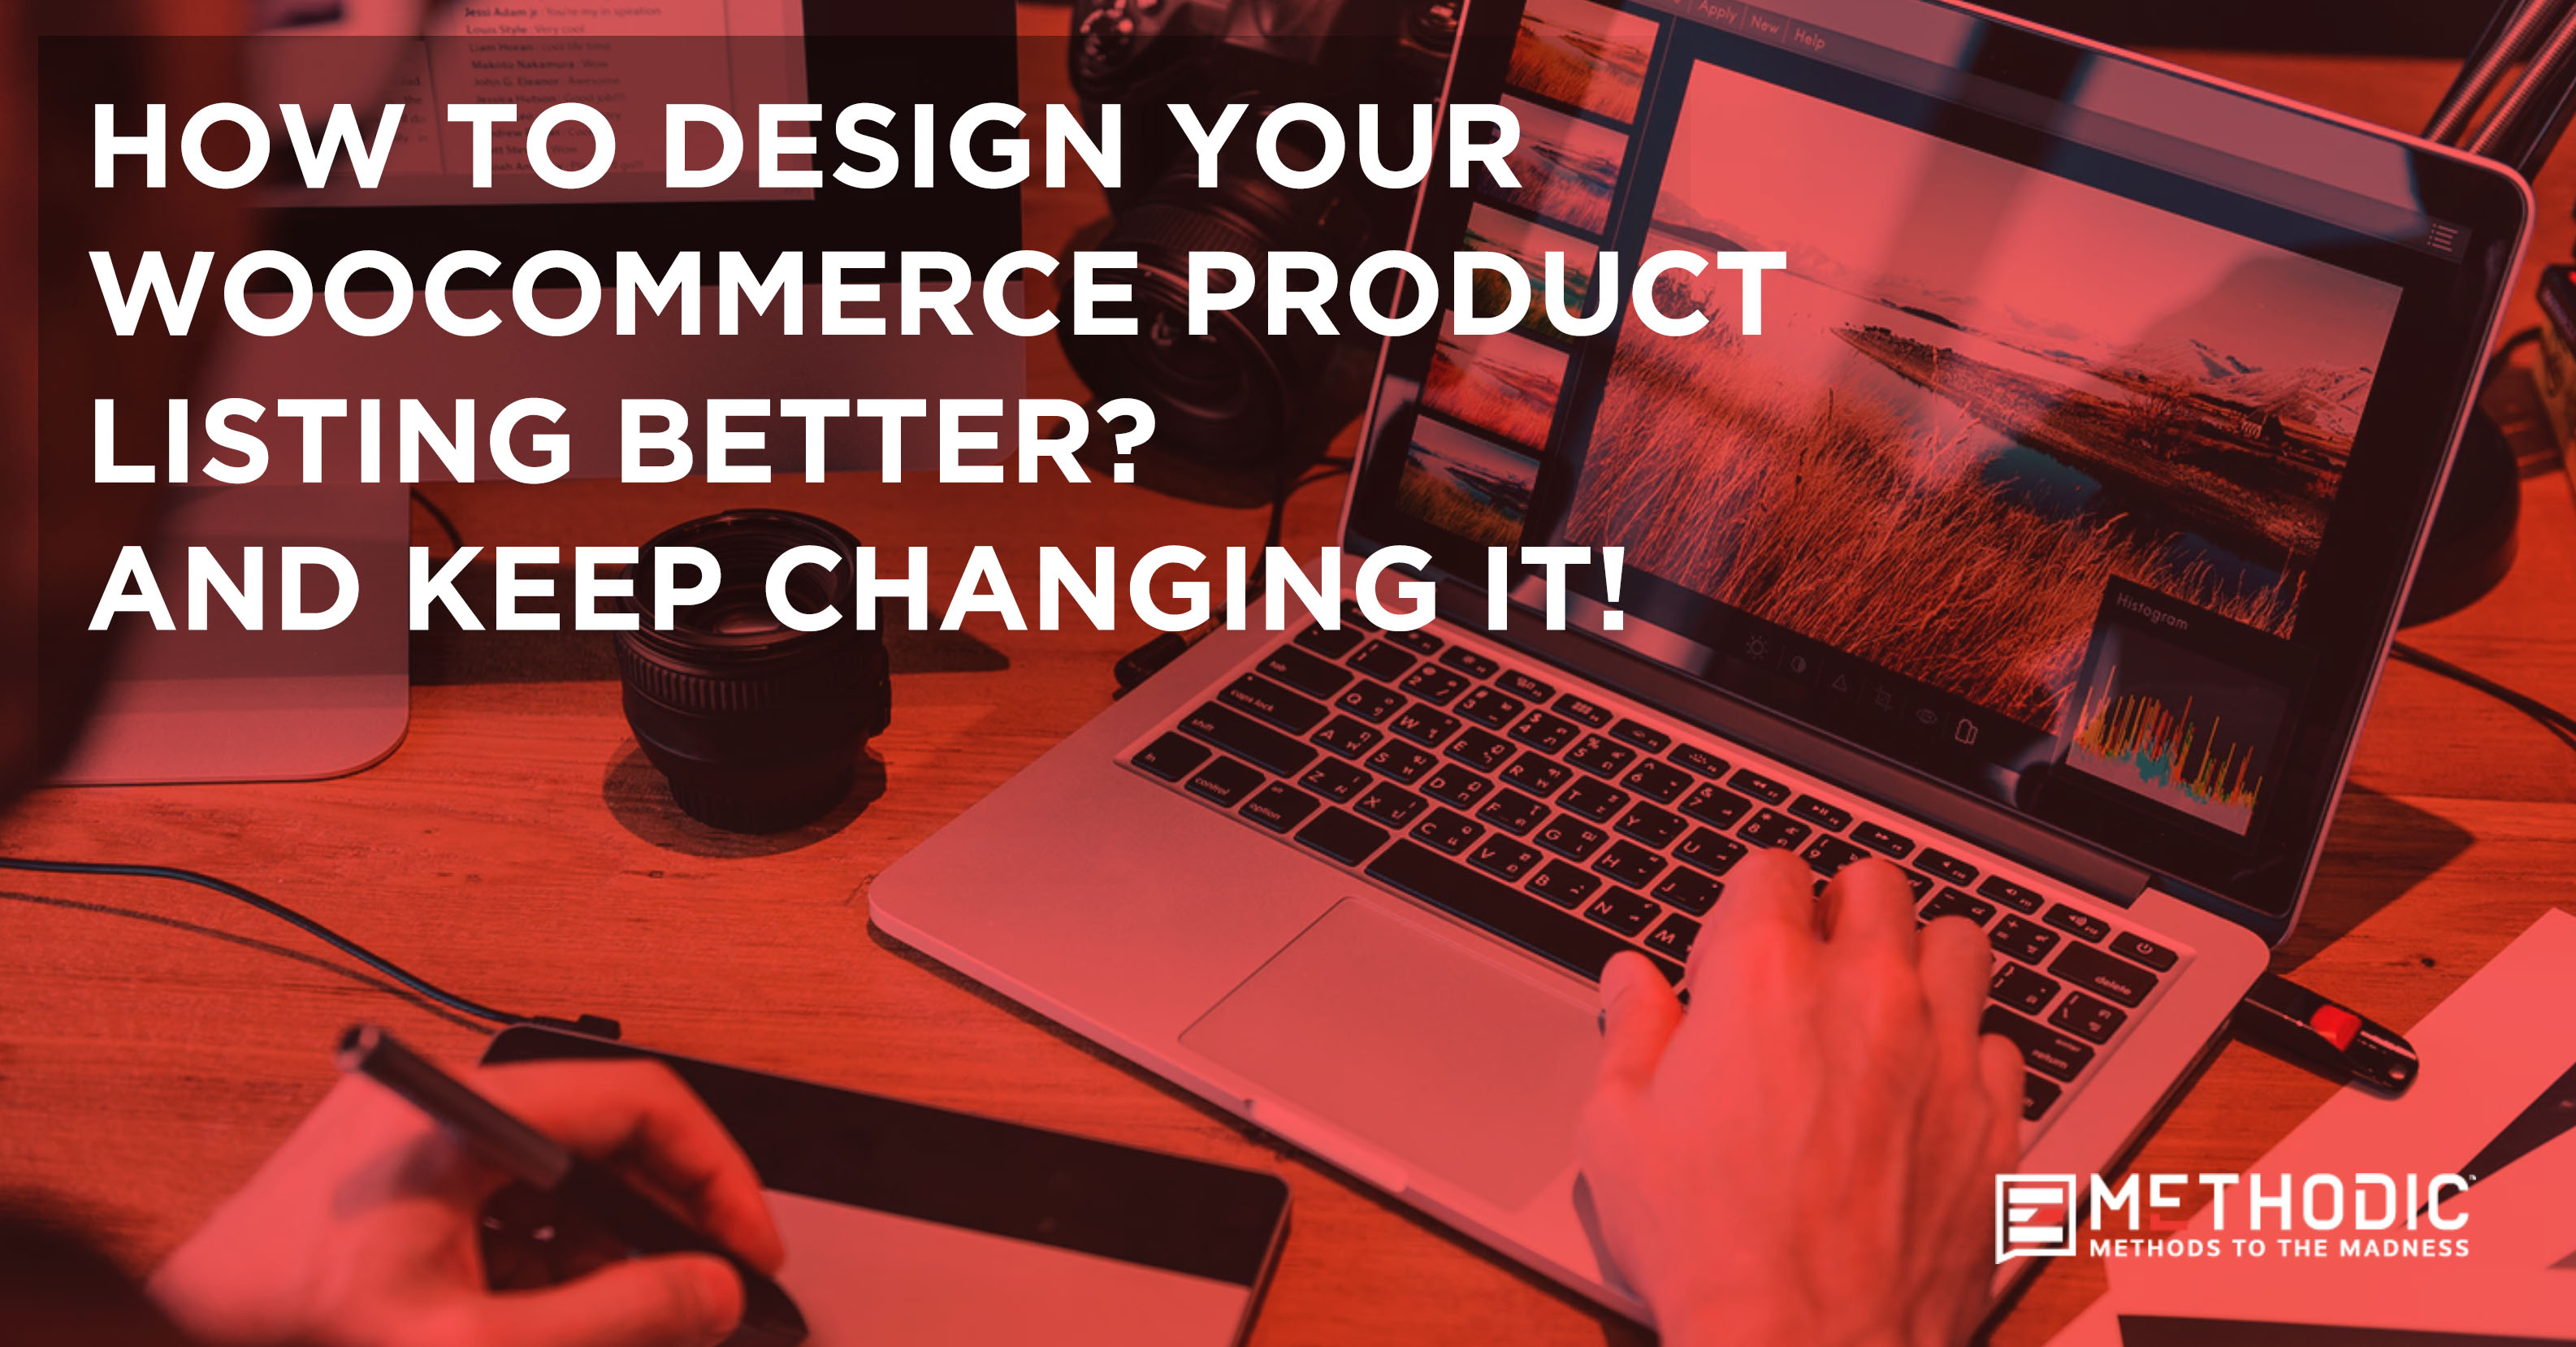 How to Design Your WooCommerce Product Listing Better? And Keep Changing It!